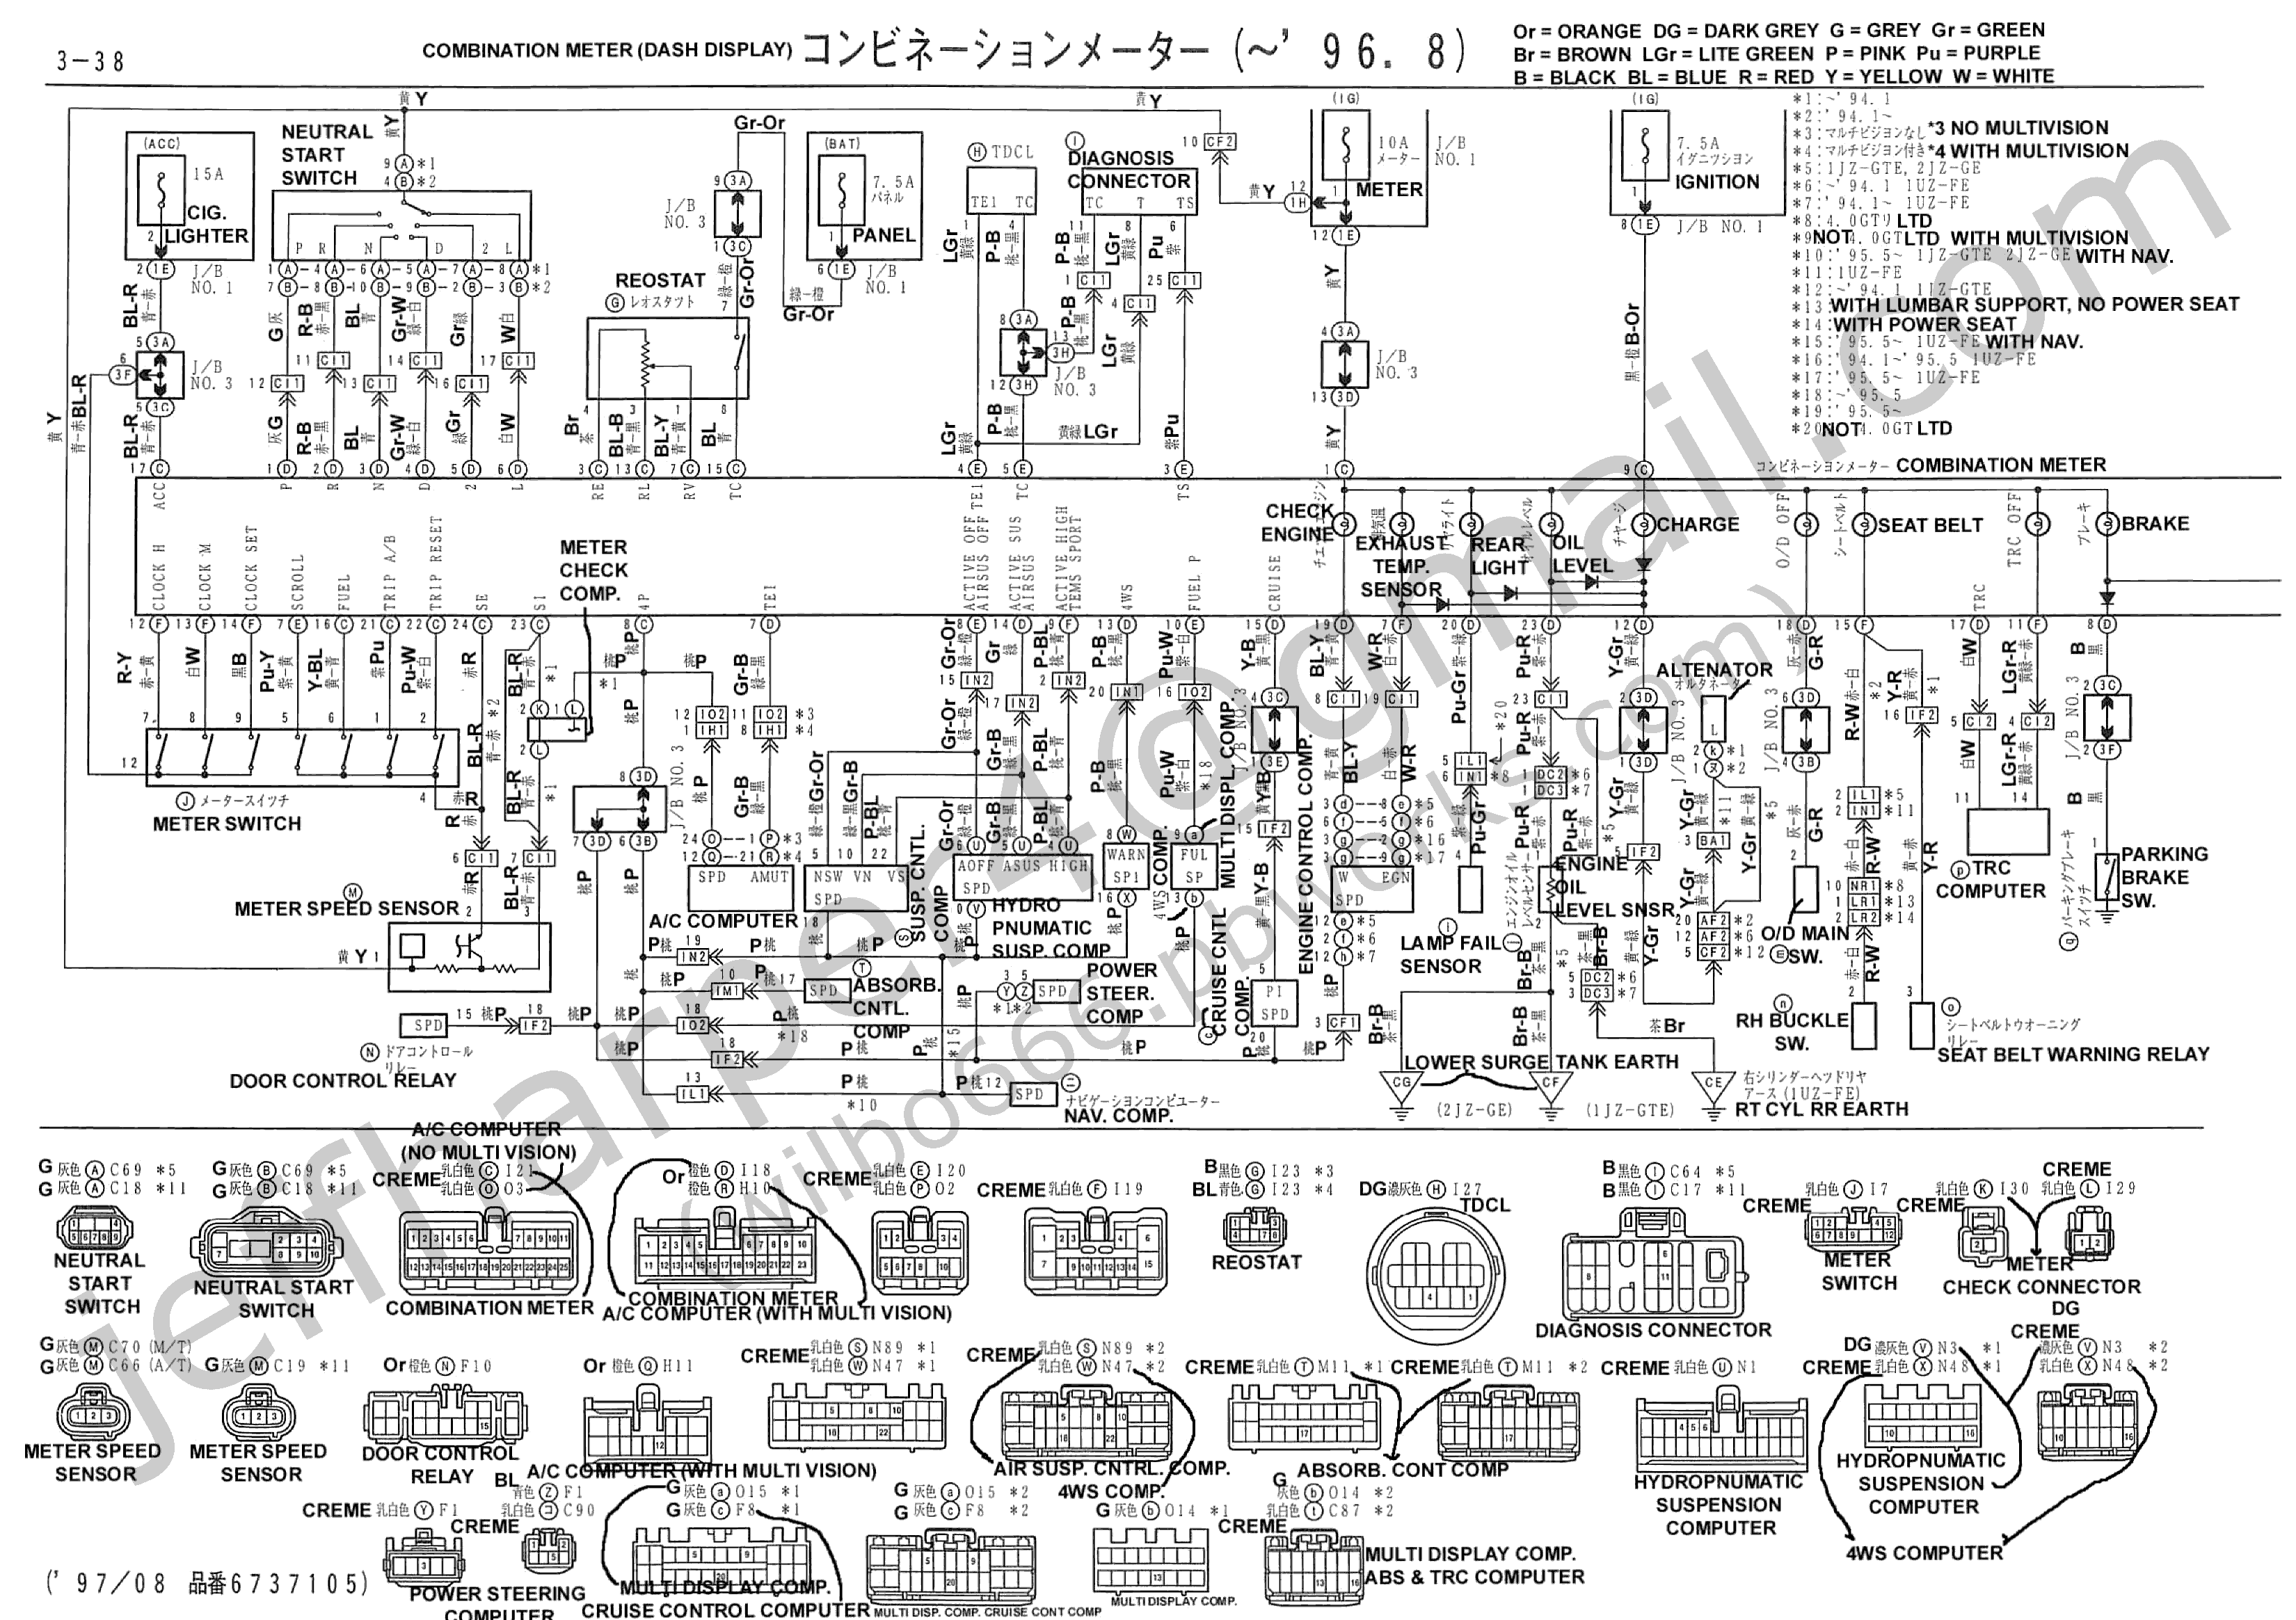 xZZ3x Electrical Wiring Diagram 6737105 3 38?resize\\\\\\\\\\\=665%2C469 1999 pontiac montana wiring diagram ke 2003 pontiac bonneville 2000 pontiac sunfire radio wiring diagram at virtualis.co